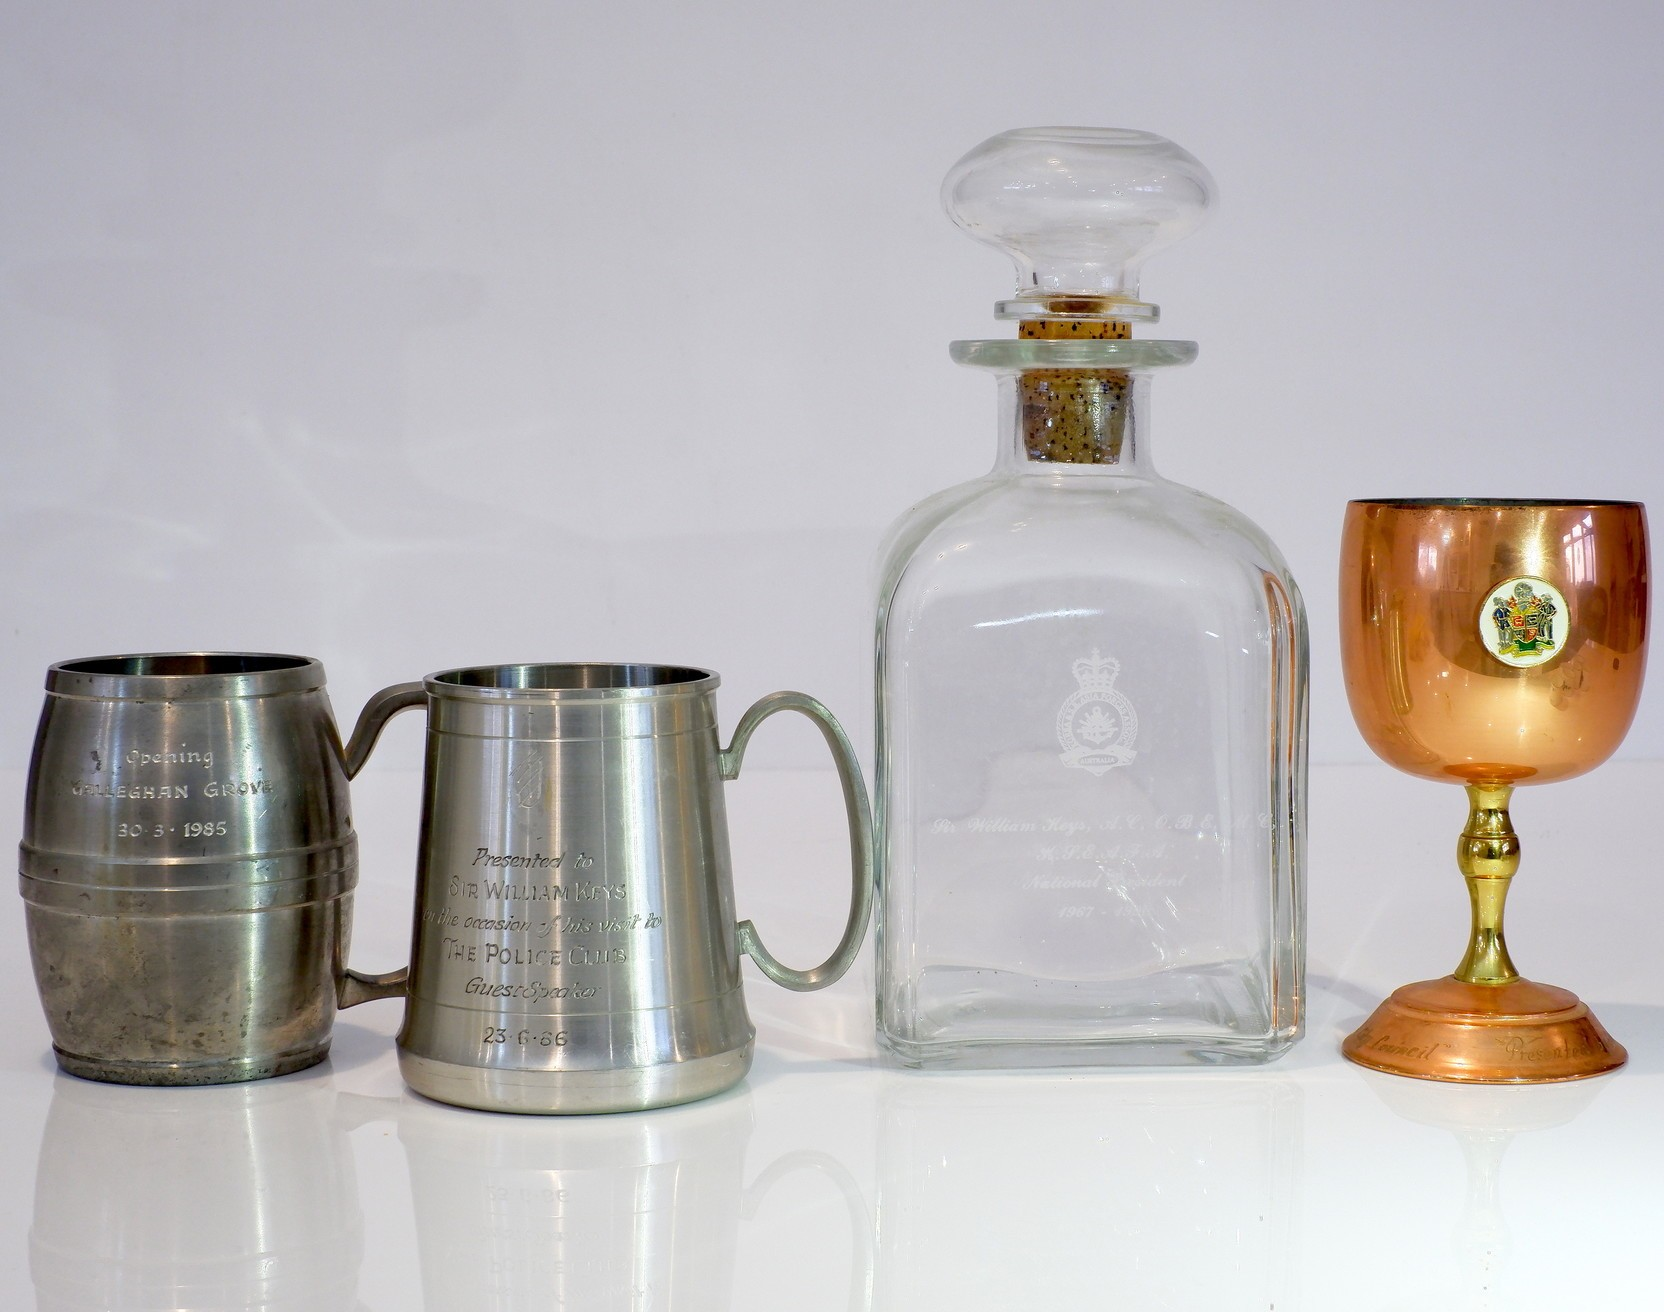 'Glass Decanter, Two Pewter Mugs and a Copped Wine Glass Presented to Sir William Keys'